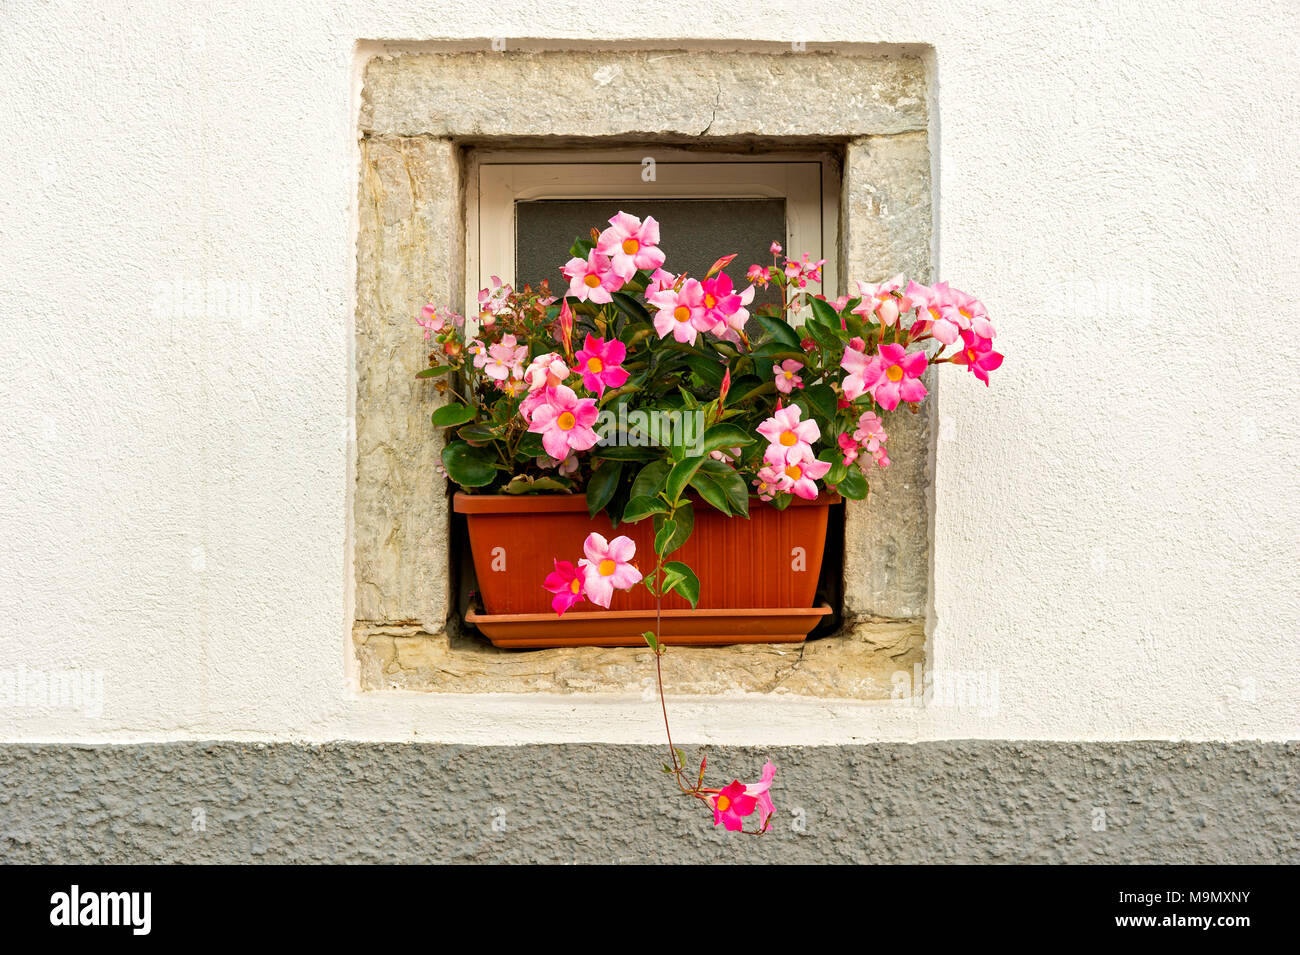 Flower box with flowering pink Dipladenia (Mandevilla sanderi), in a window alcove, Old Town, Agnone, Molise, Italy - Stock Image